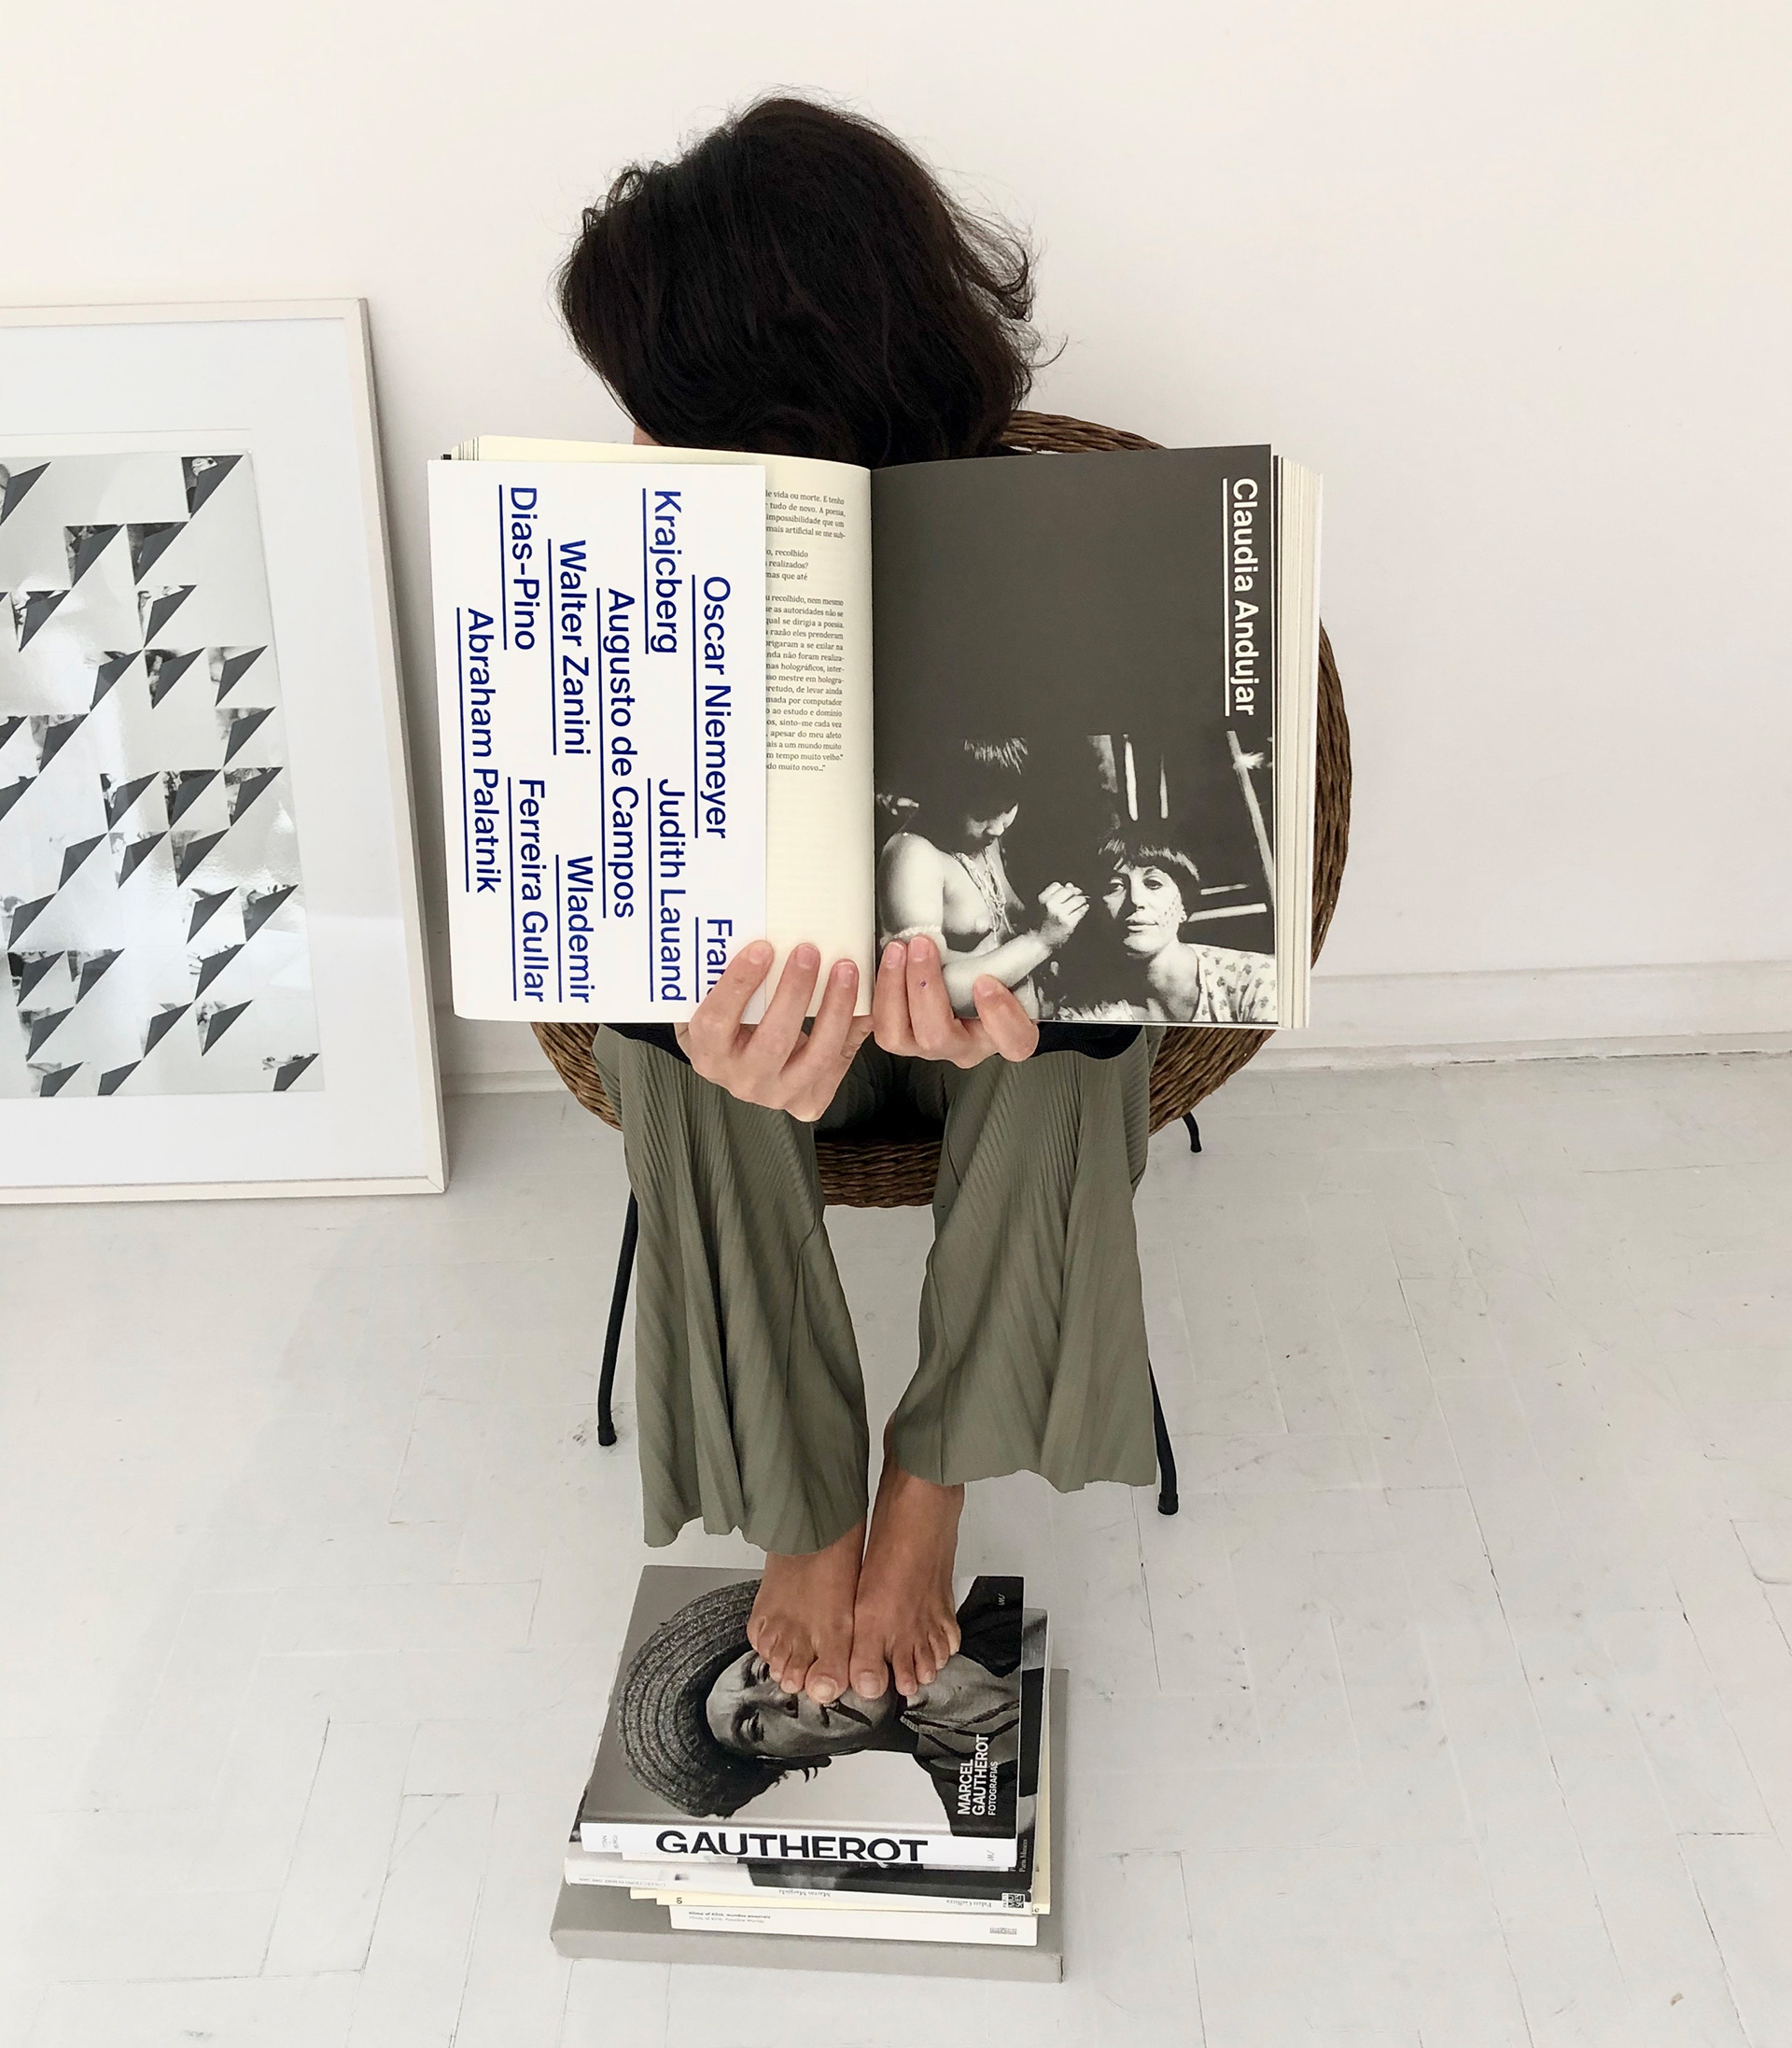 'Mariana Schmidt showing her pick, 'Entrevistas Brasileiras: Volume 1' by author Hans Ulrich Obrist | | What Am I Reading | Mariana Schmidt | Entrevistas Brasileiras: Volume 1| STIRworld